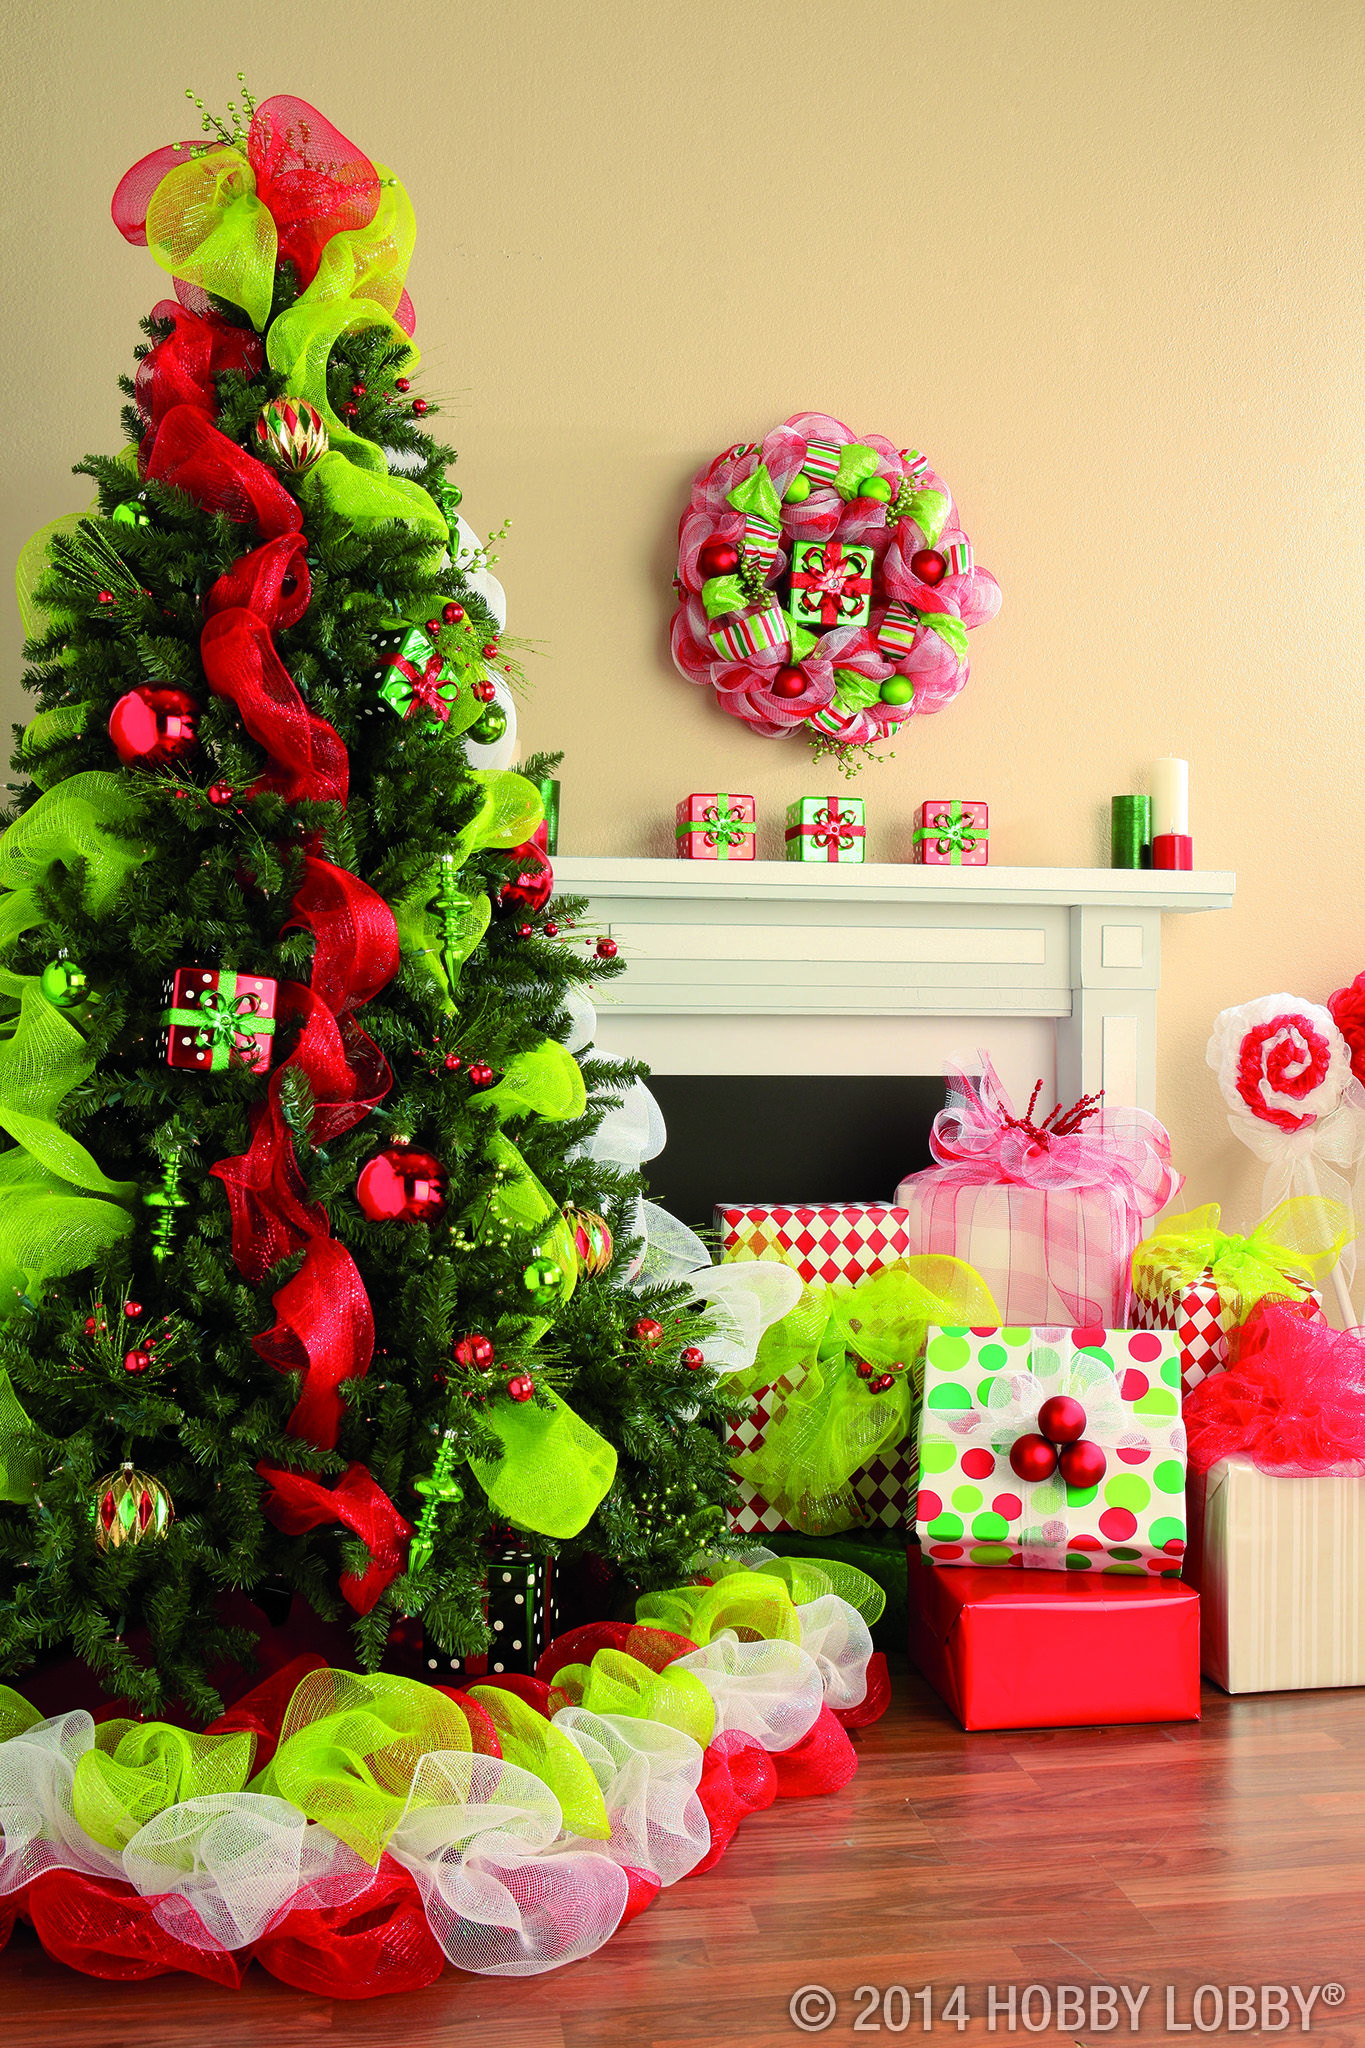 Deck The Halls With Deco Mesh For An Affordable But